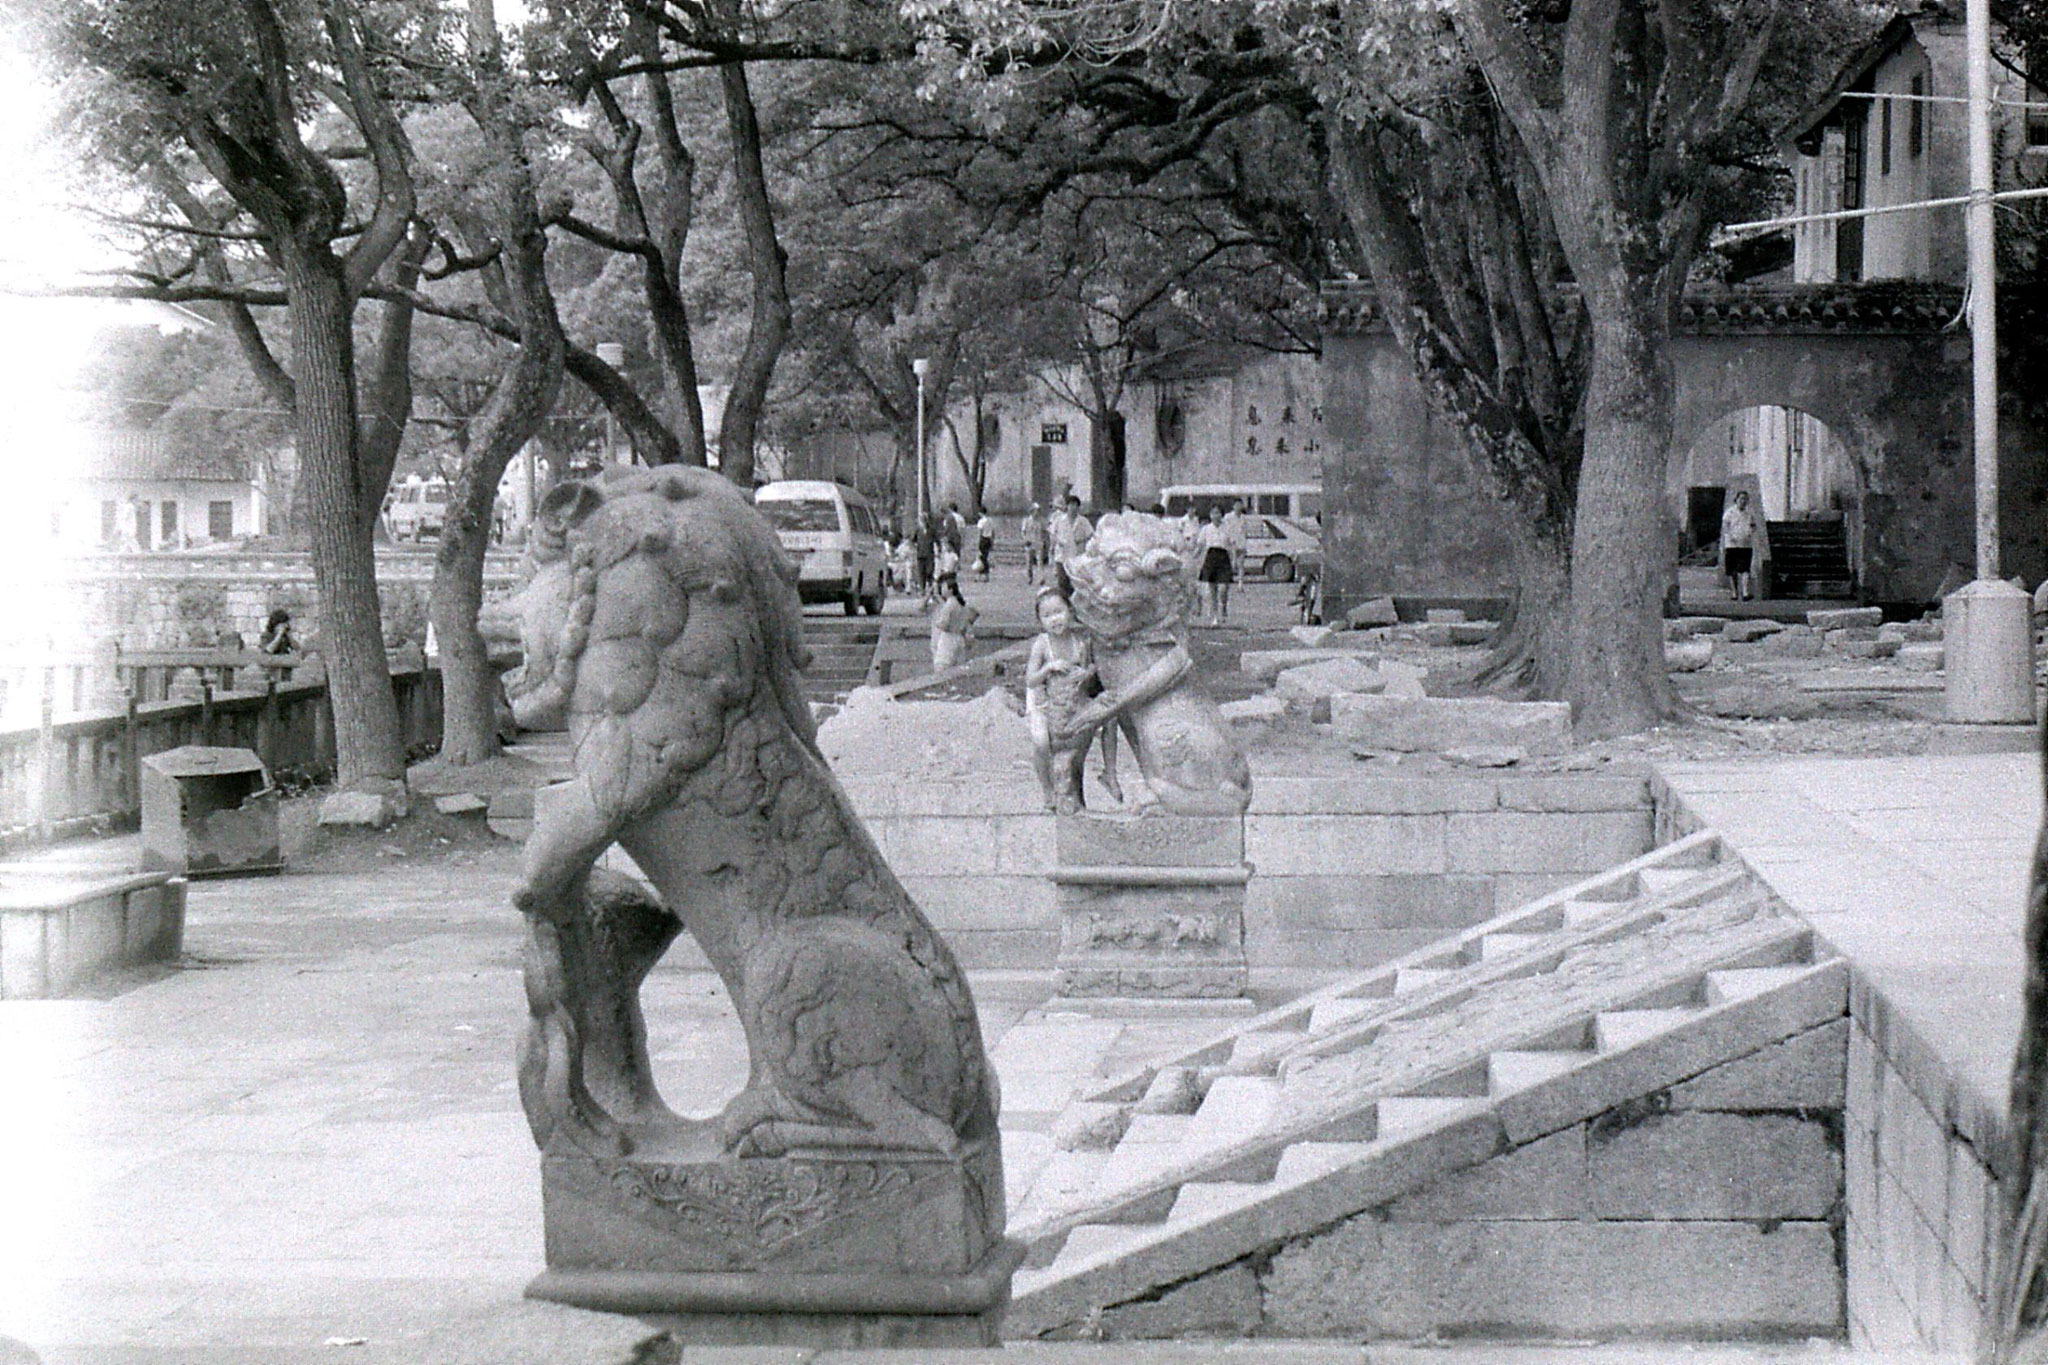 24/7/1989: 3: Putuo, little girl on lion statue